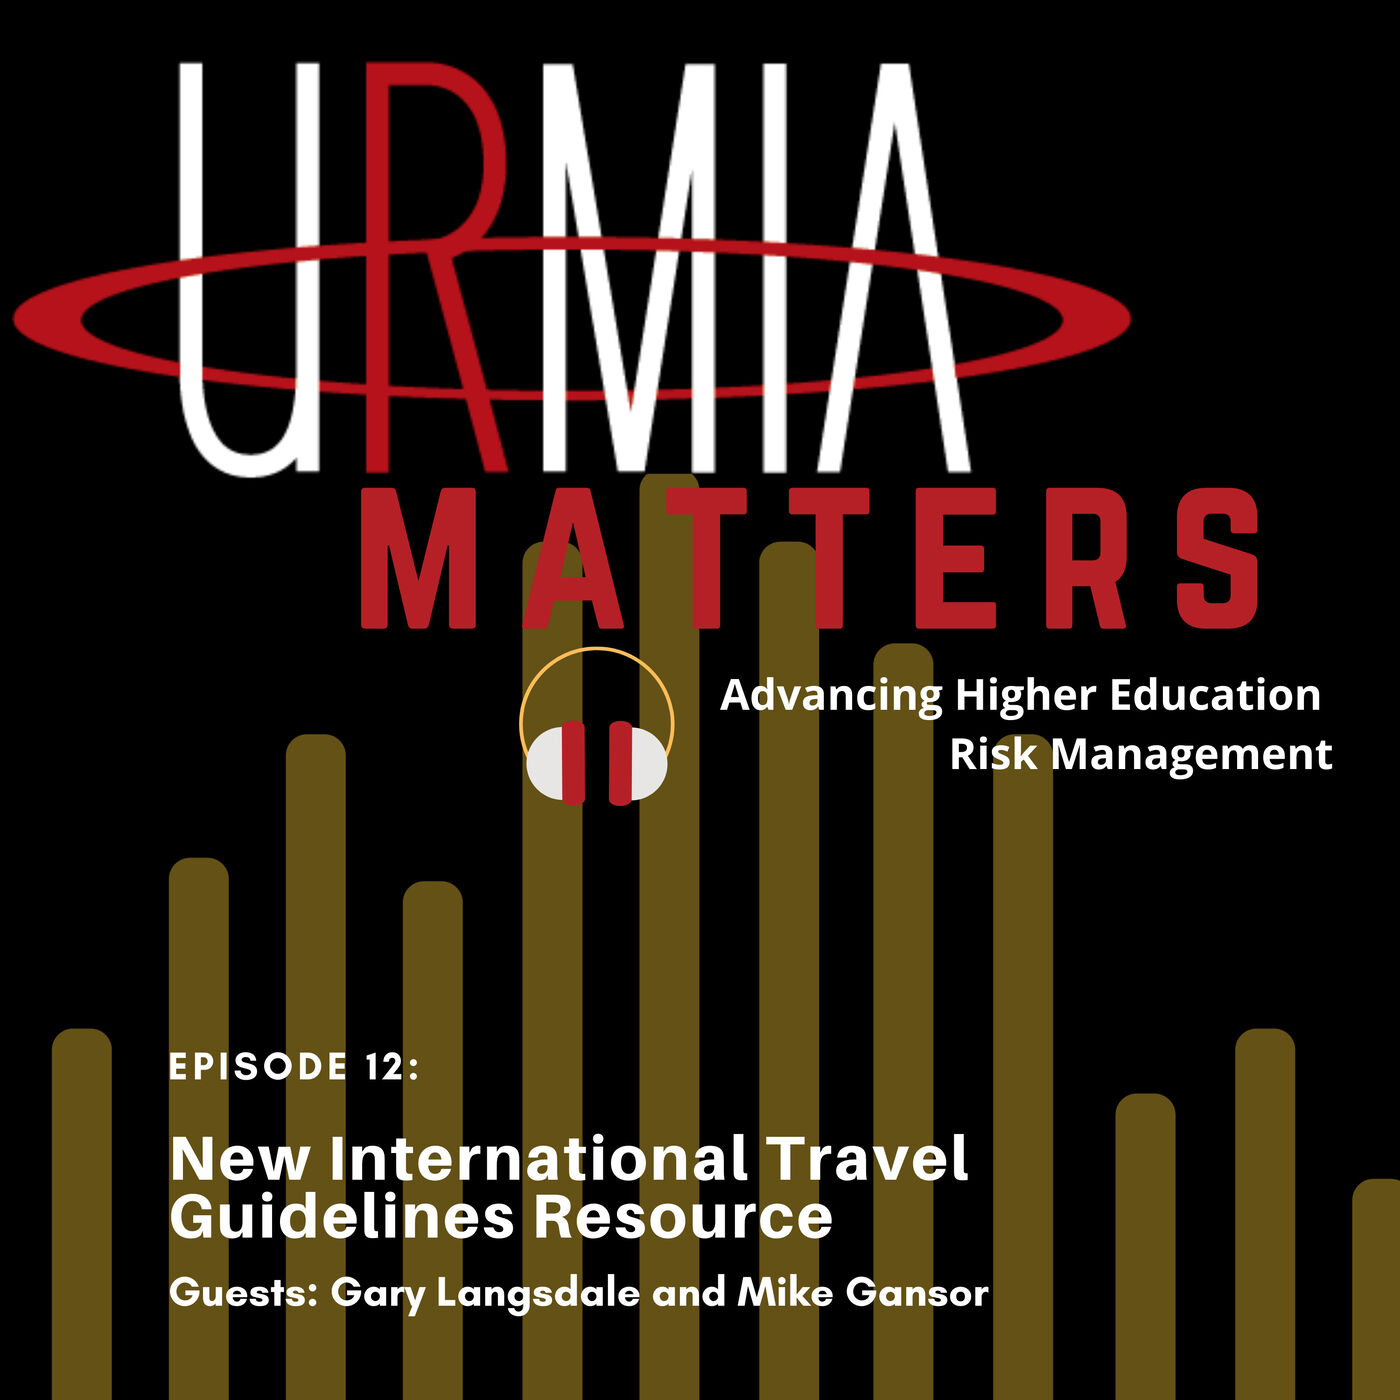 Episode 12: New International Travel Guidelines Resource